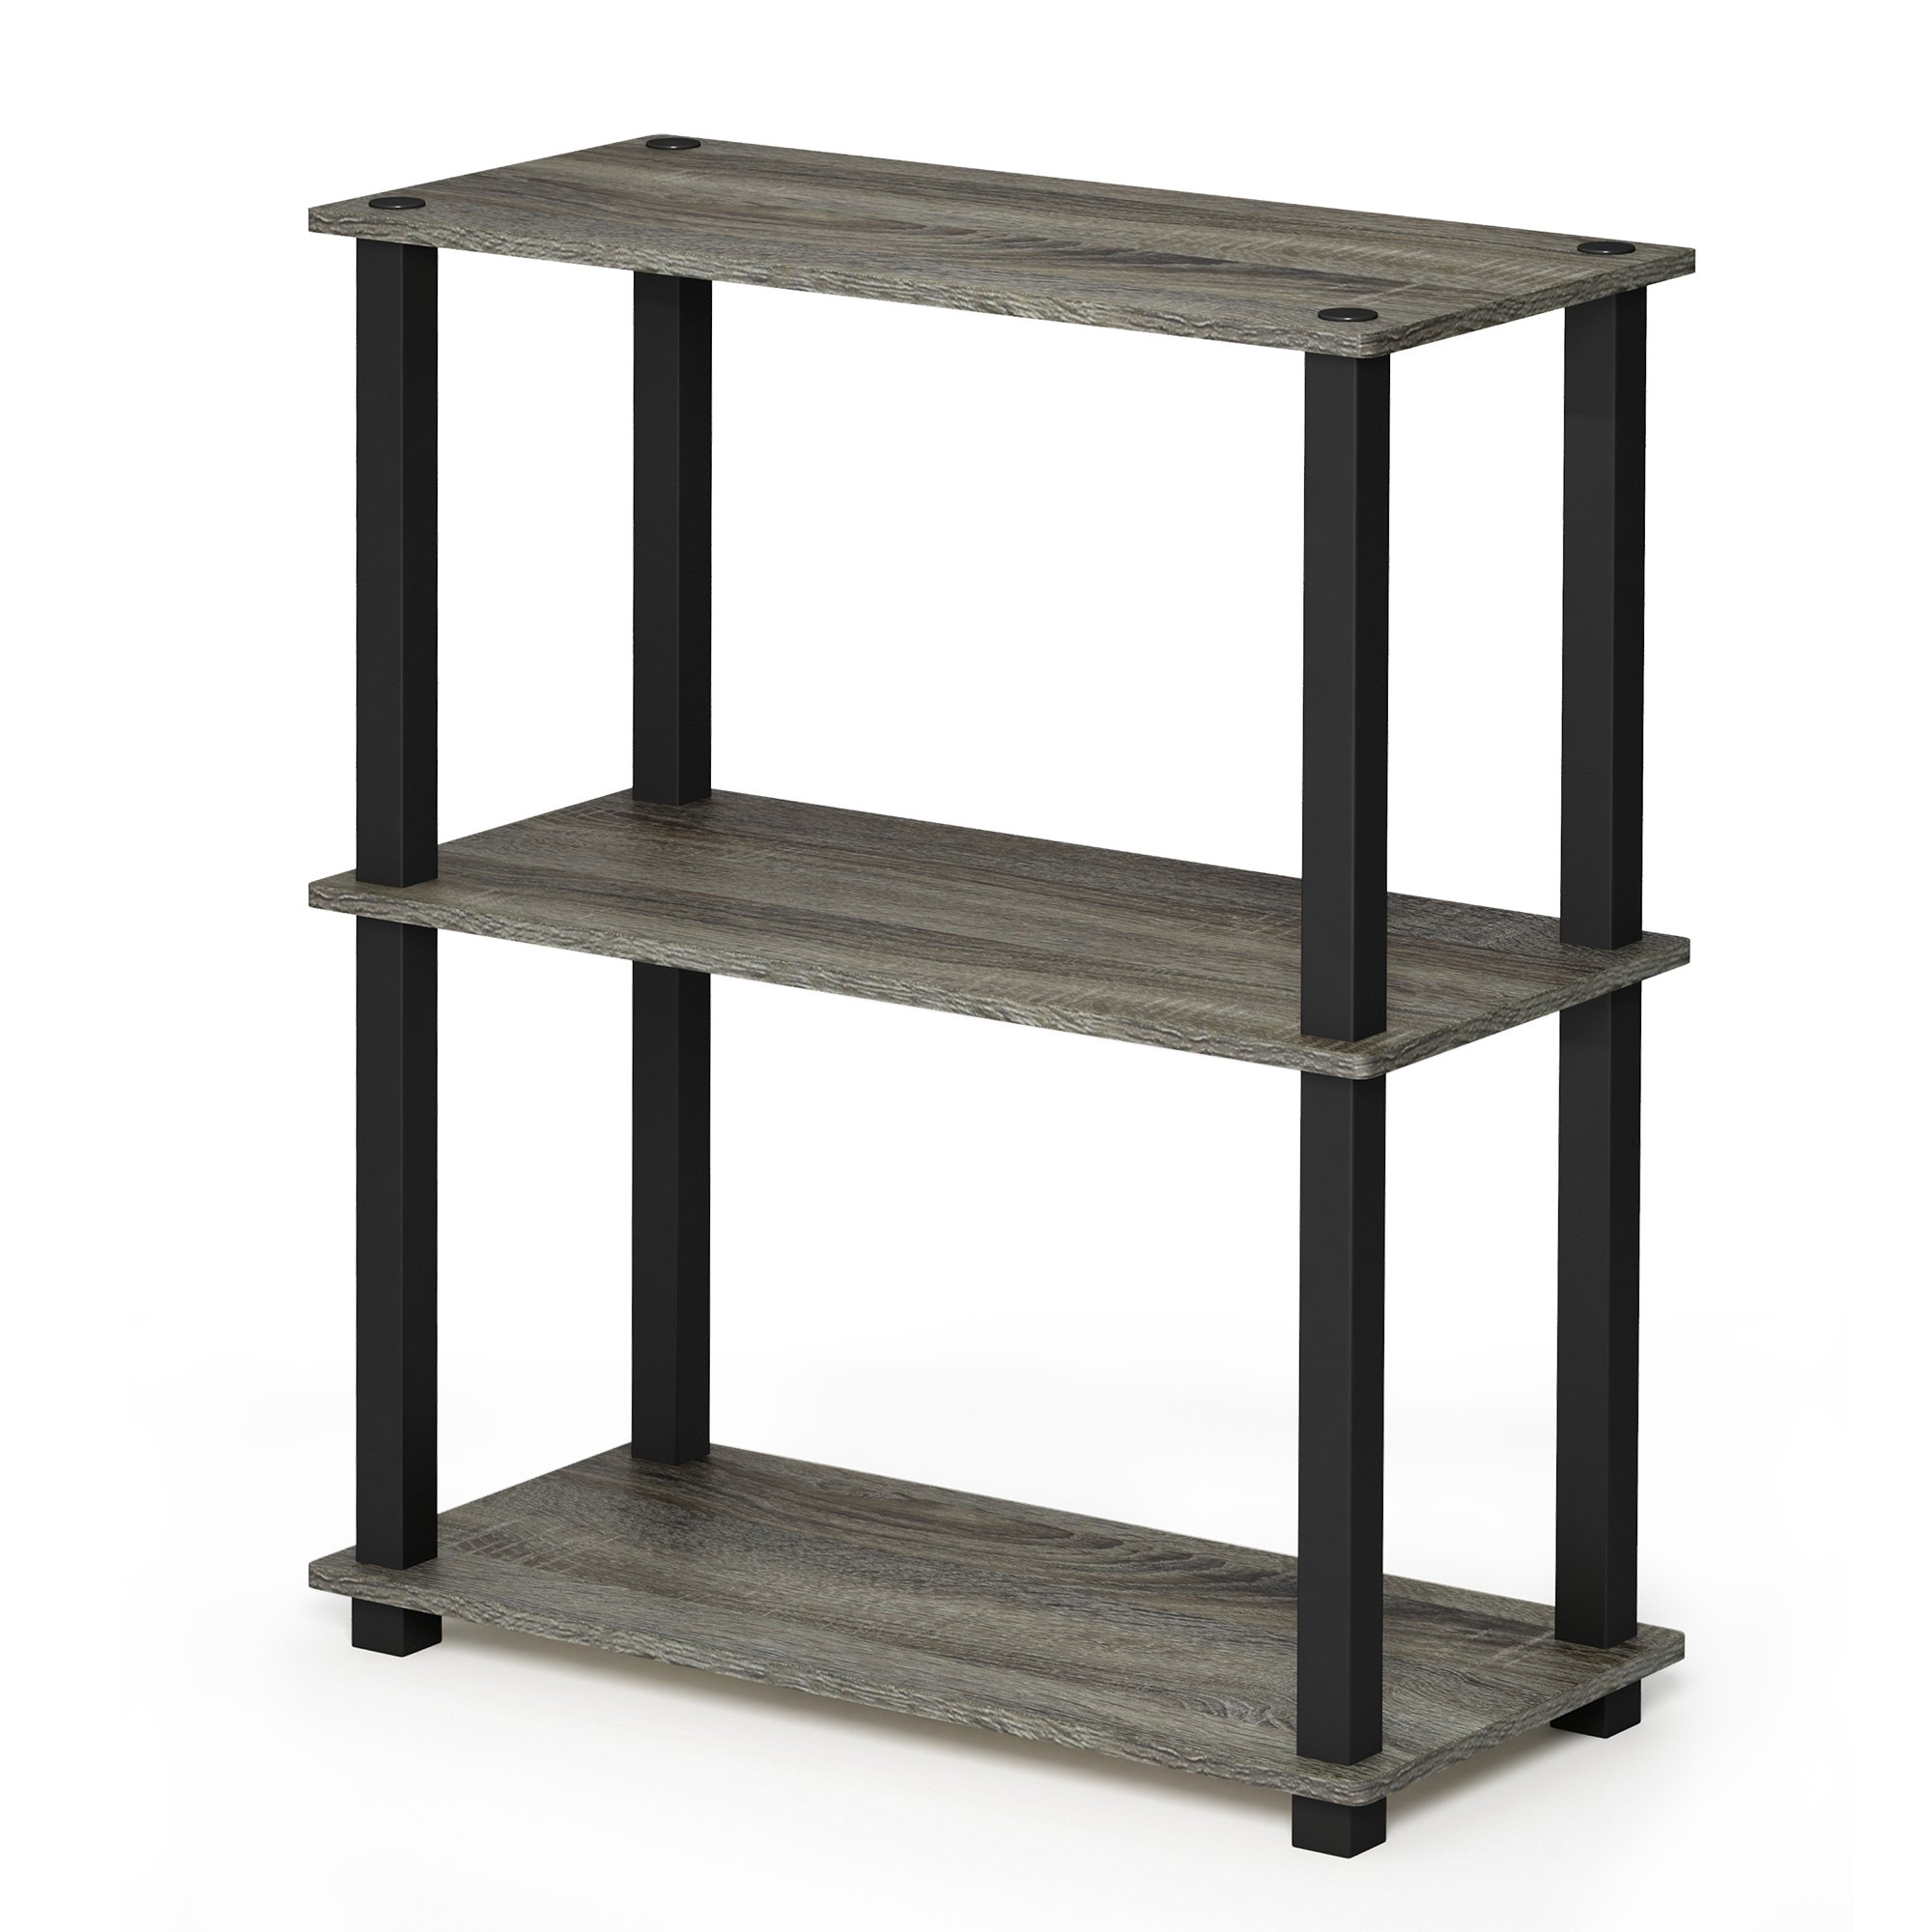 FURINNO 18025GYW/BK Turn-S 3-Tier Compact Multipurpose Shelf with Square Tubes, French Oak Grey/Black by Furinno